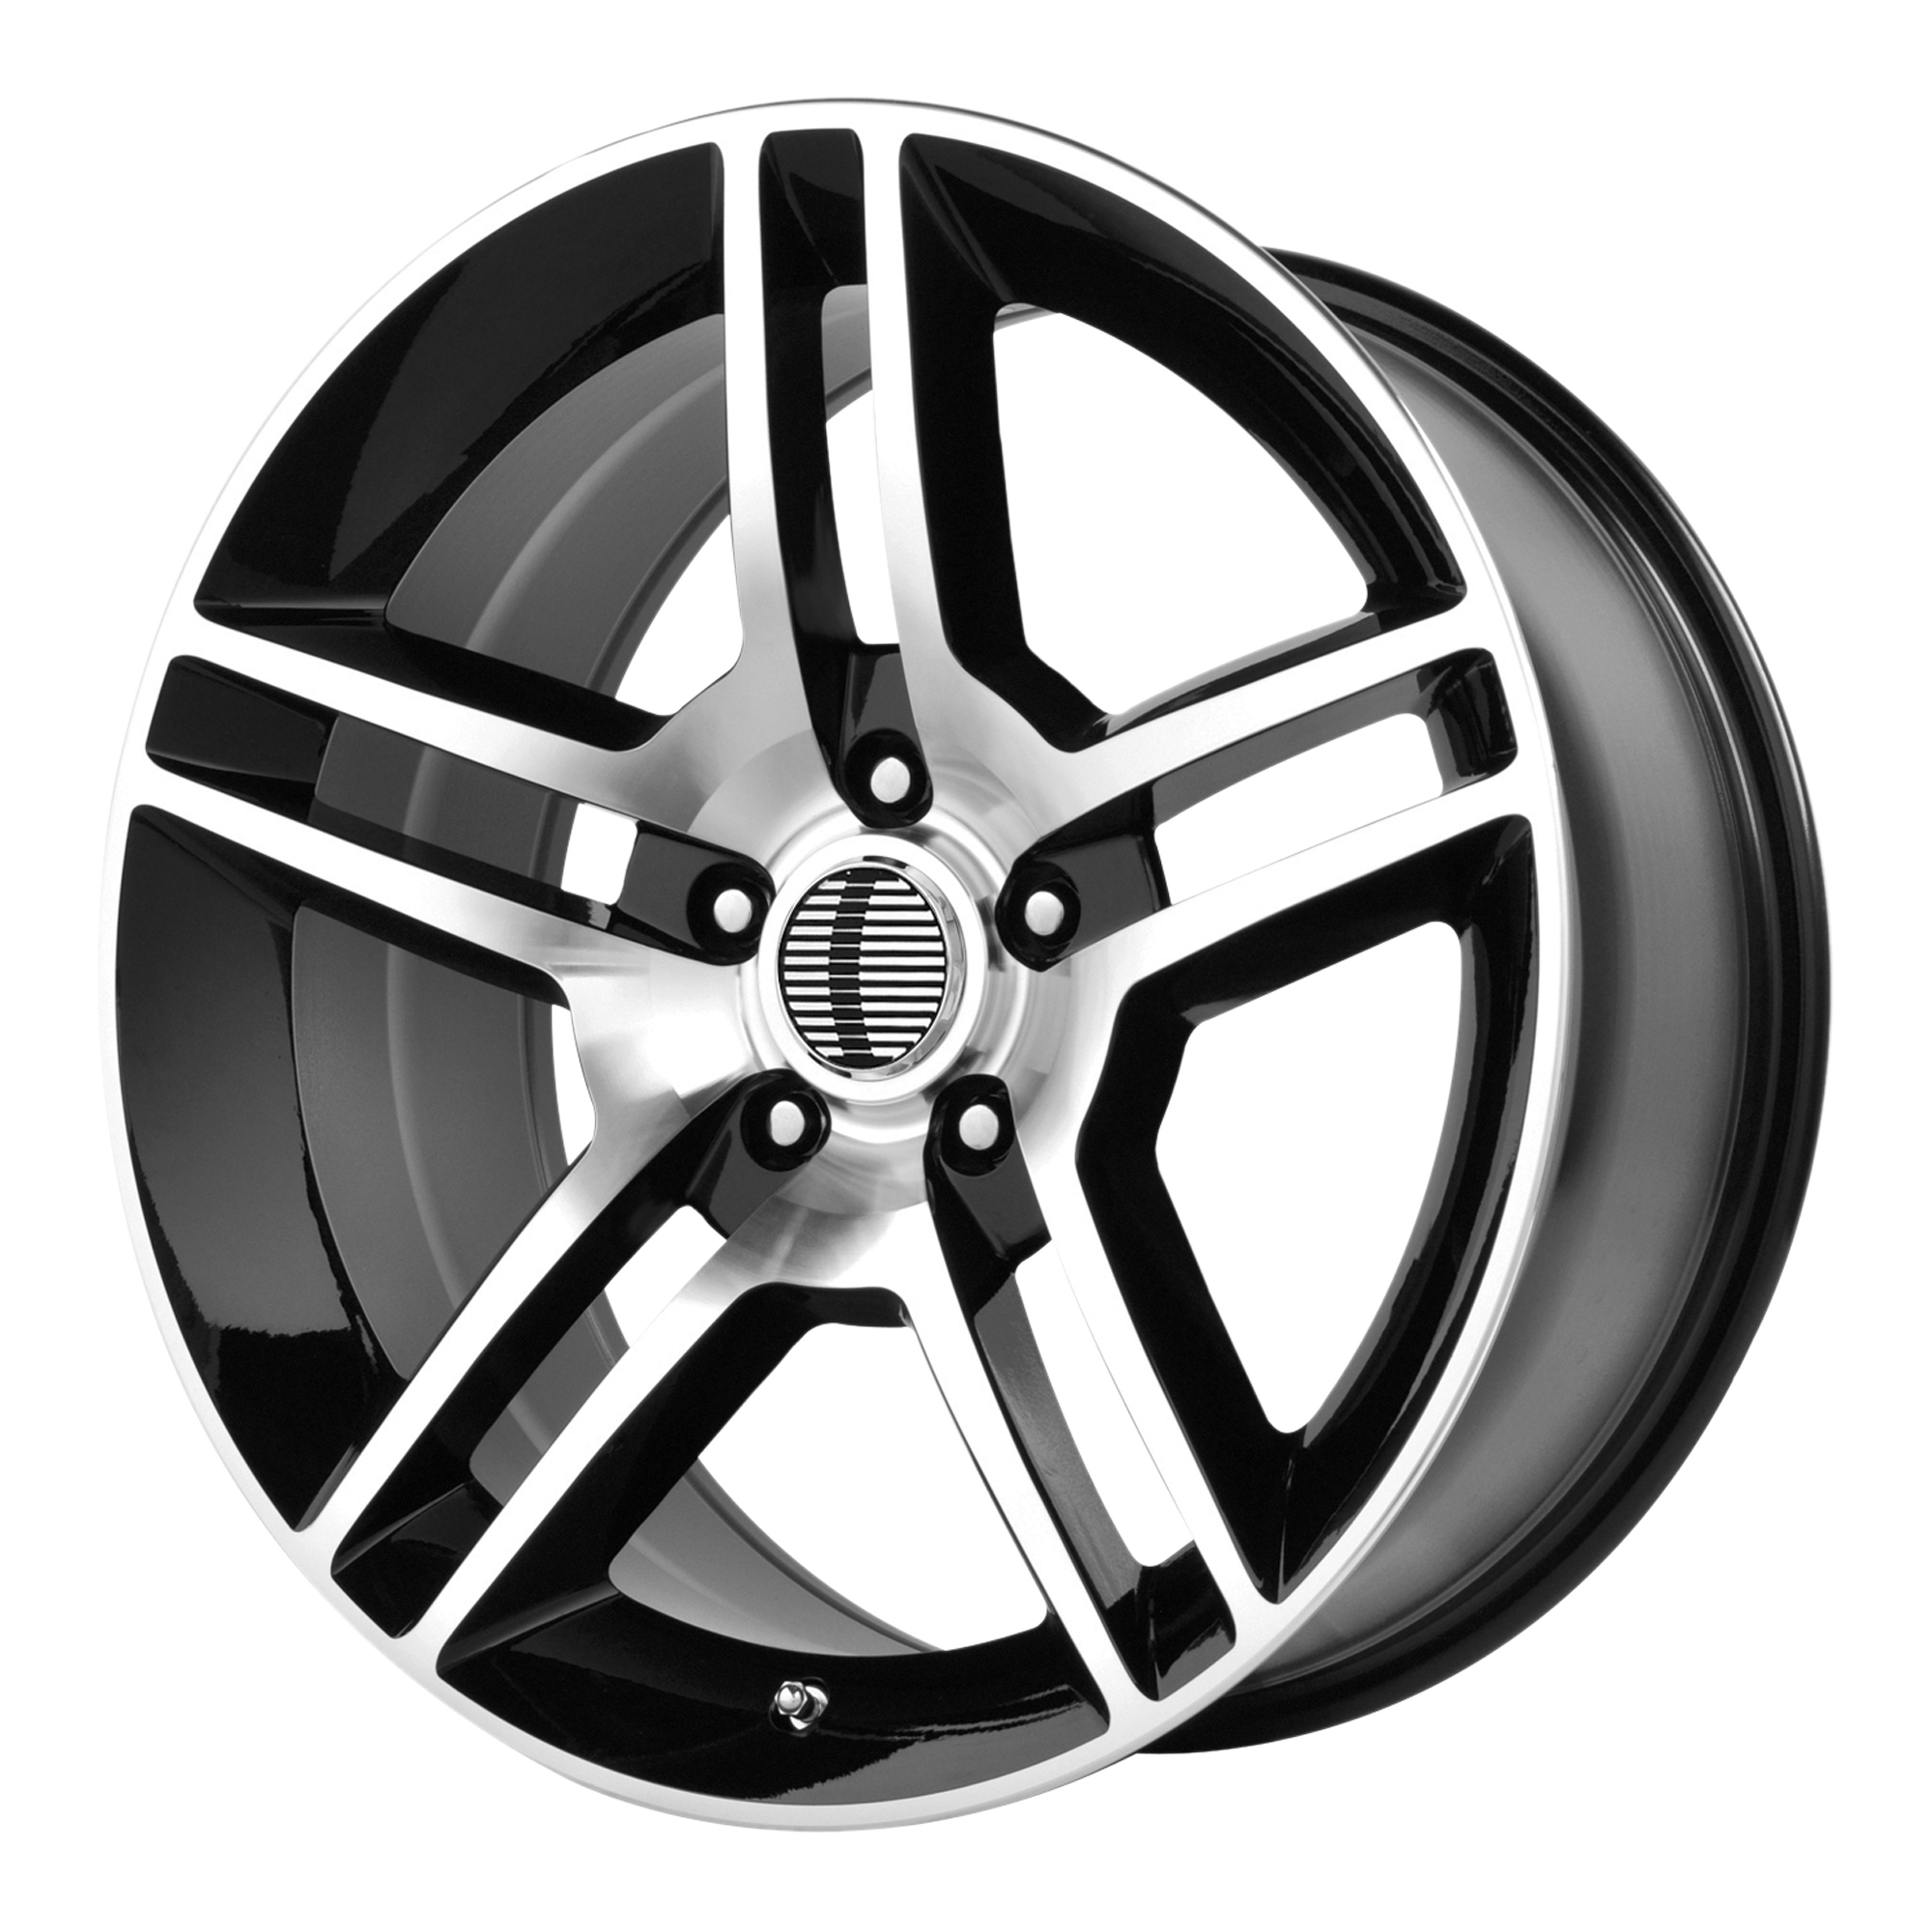 Details about ford mustang shelby gt 500 style wheel 19x8 5 30 black 5x114 3 5x4 5 qty 1